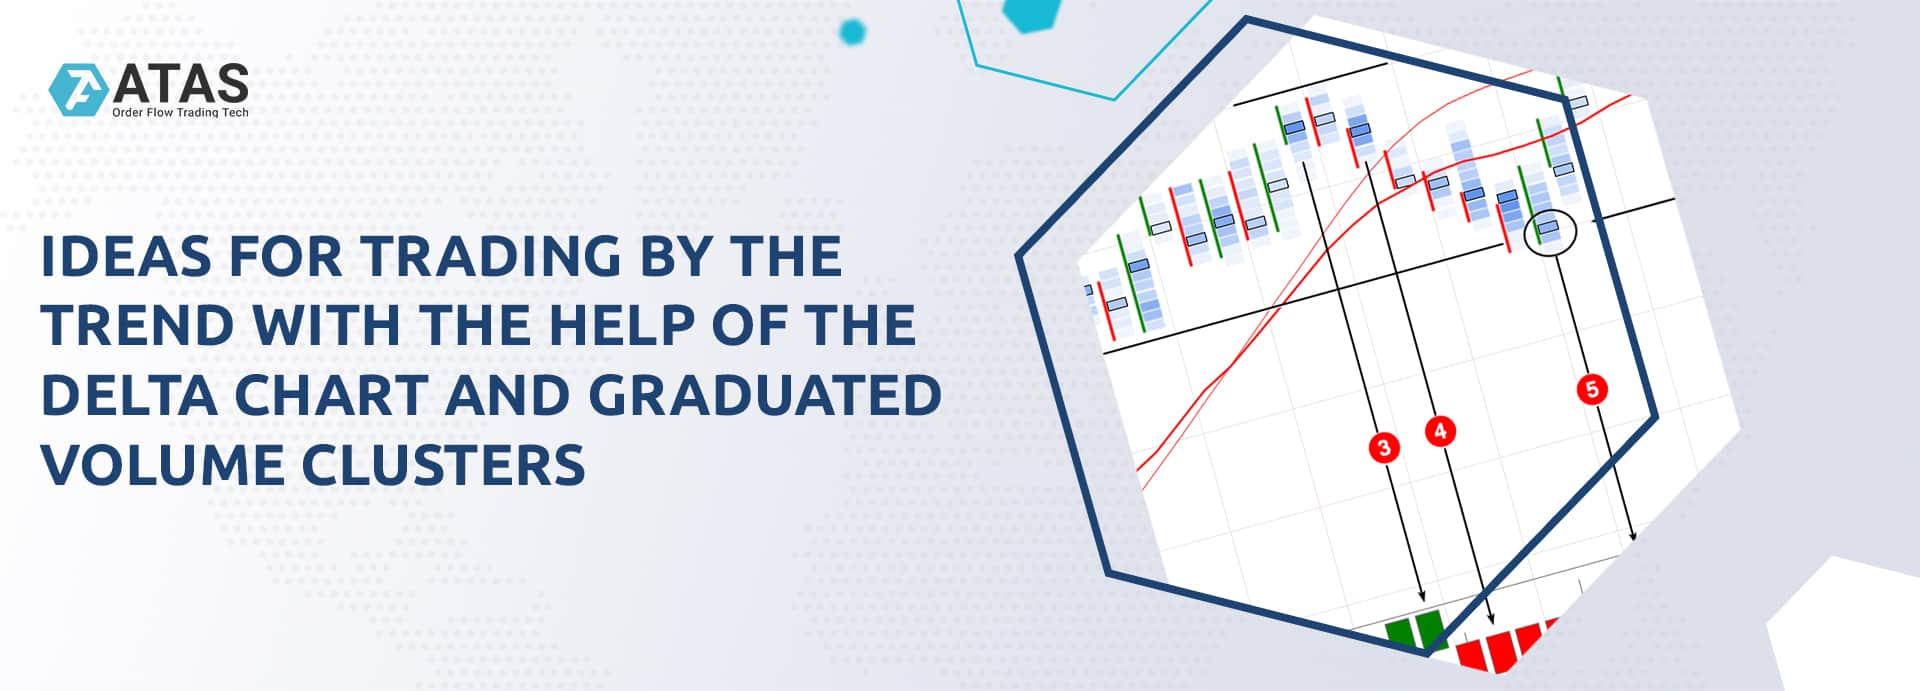 IDEAS FOR TRADING BY THE TREND WITH THE HELP OF THE DELTA CHART AND GRADUATED VOLUME CLUSTERS